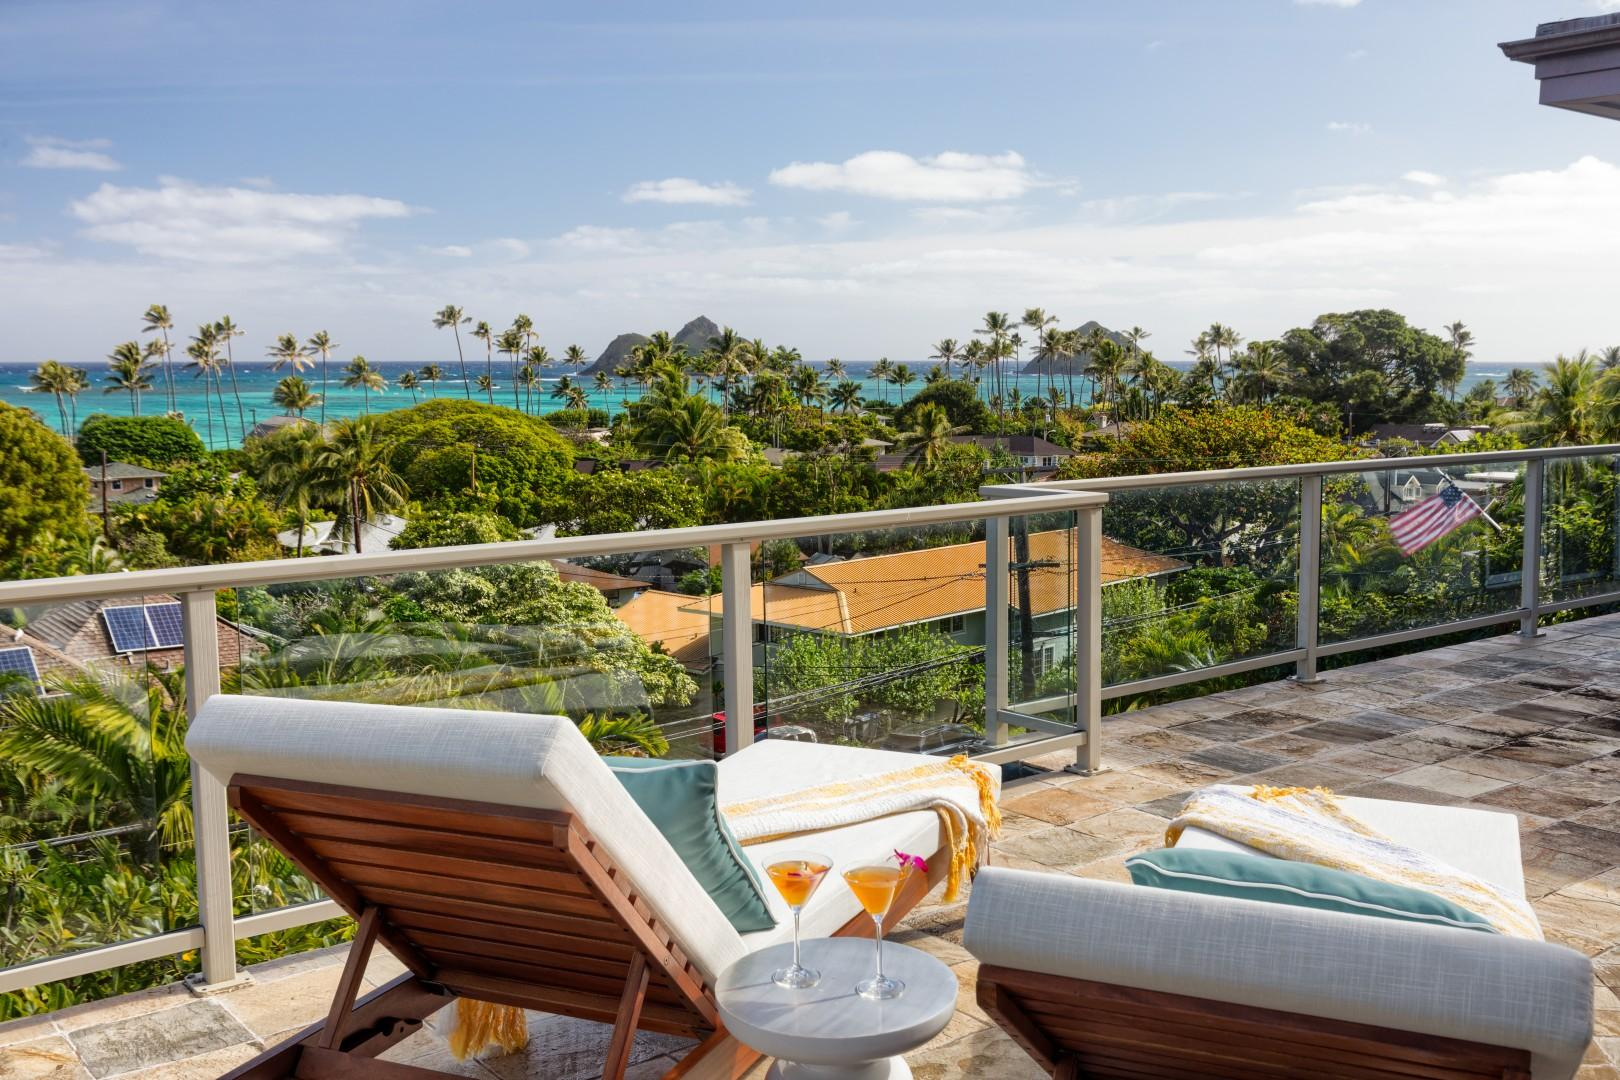 Ultra-private tanning spot with ocean views on the lanai.